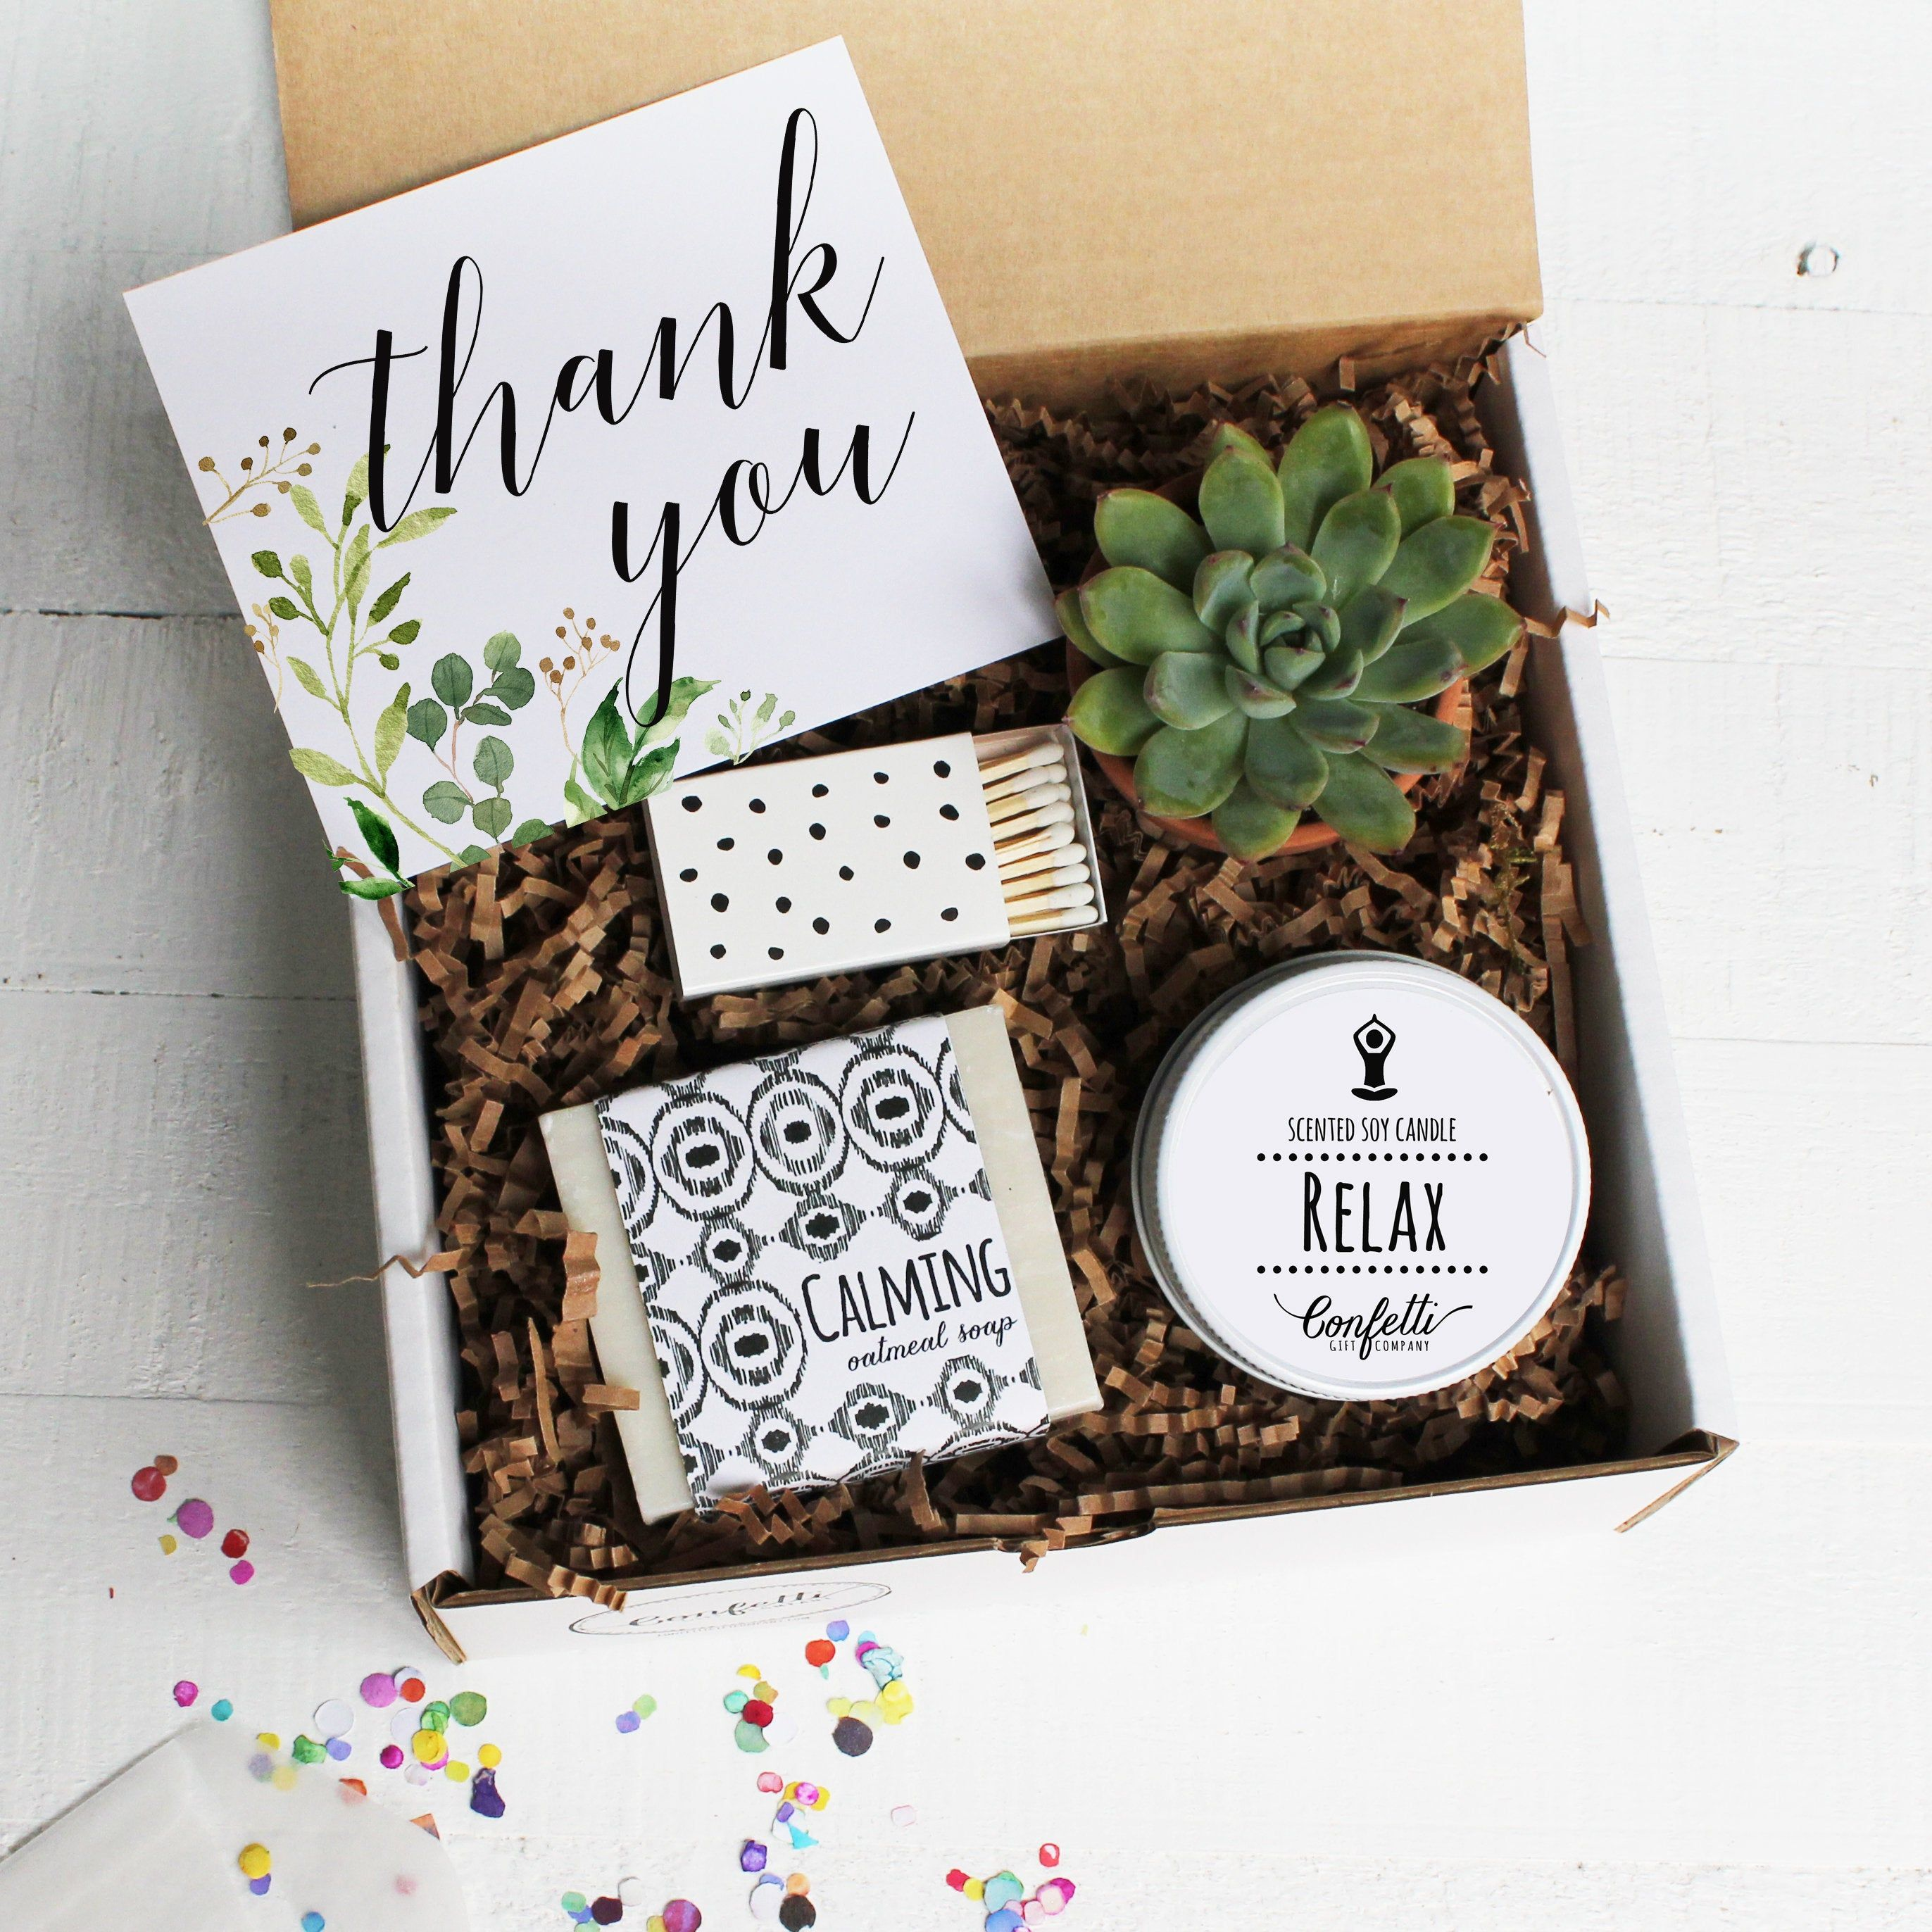 20 Best Thank You Gift Ideas - Thoughtful Gratitude Gifts